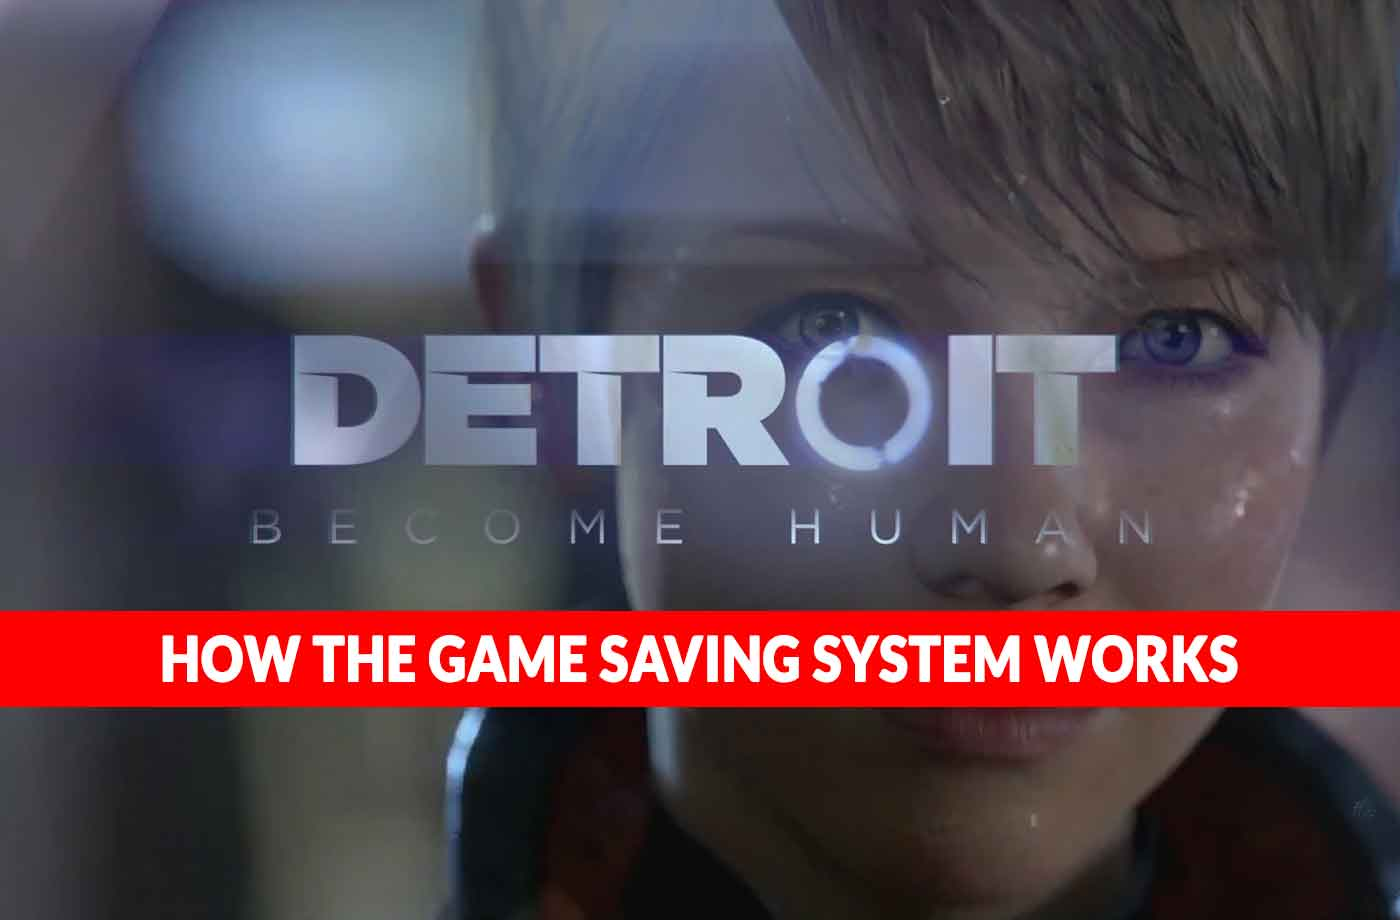 Detroit become human demo guide (100%) youtube.